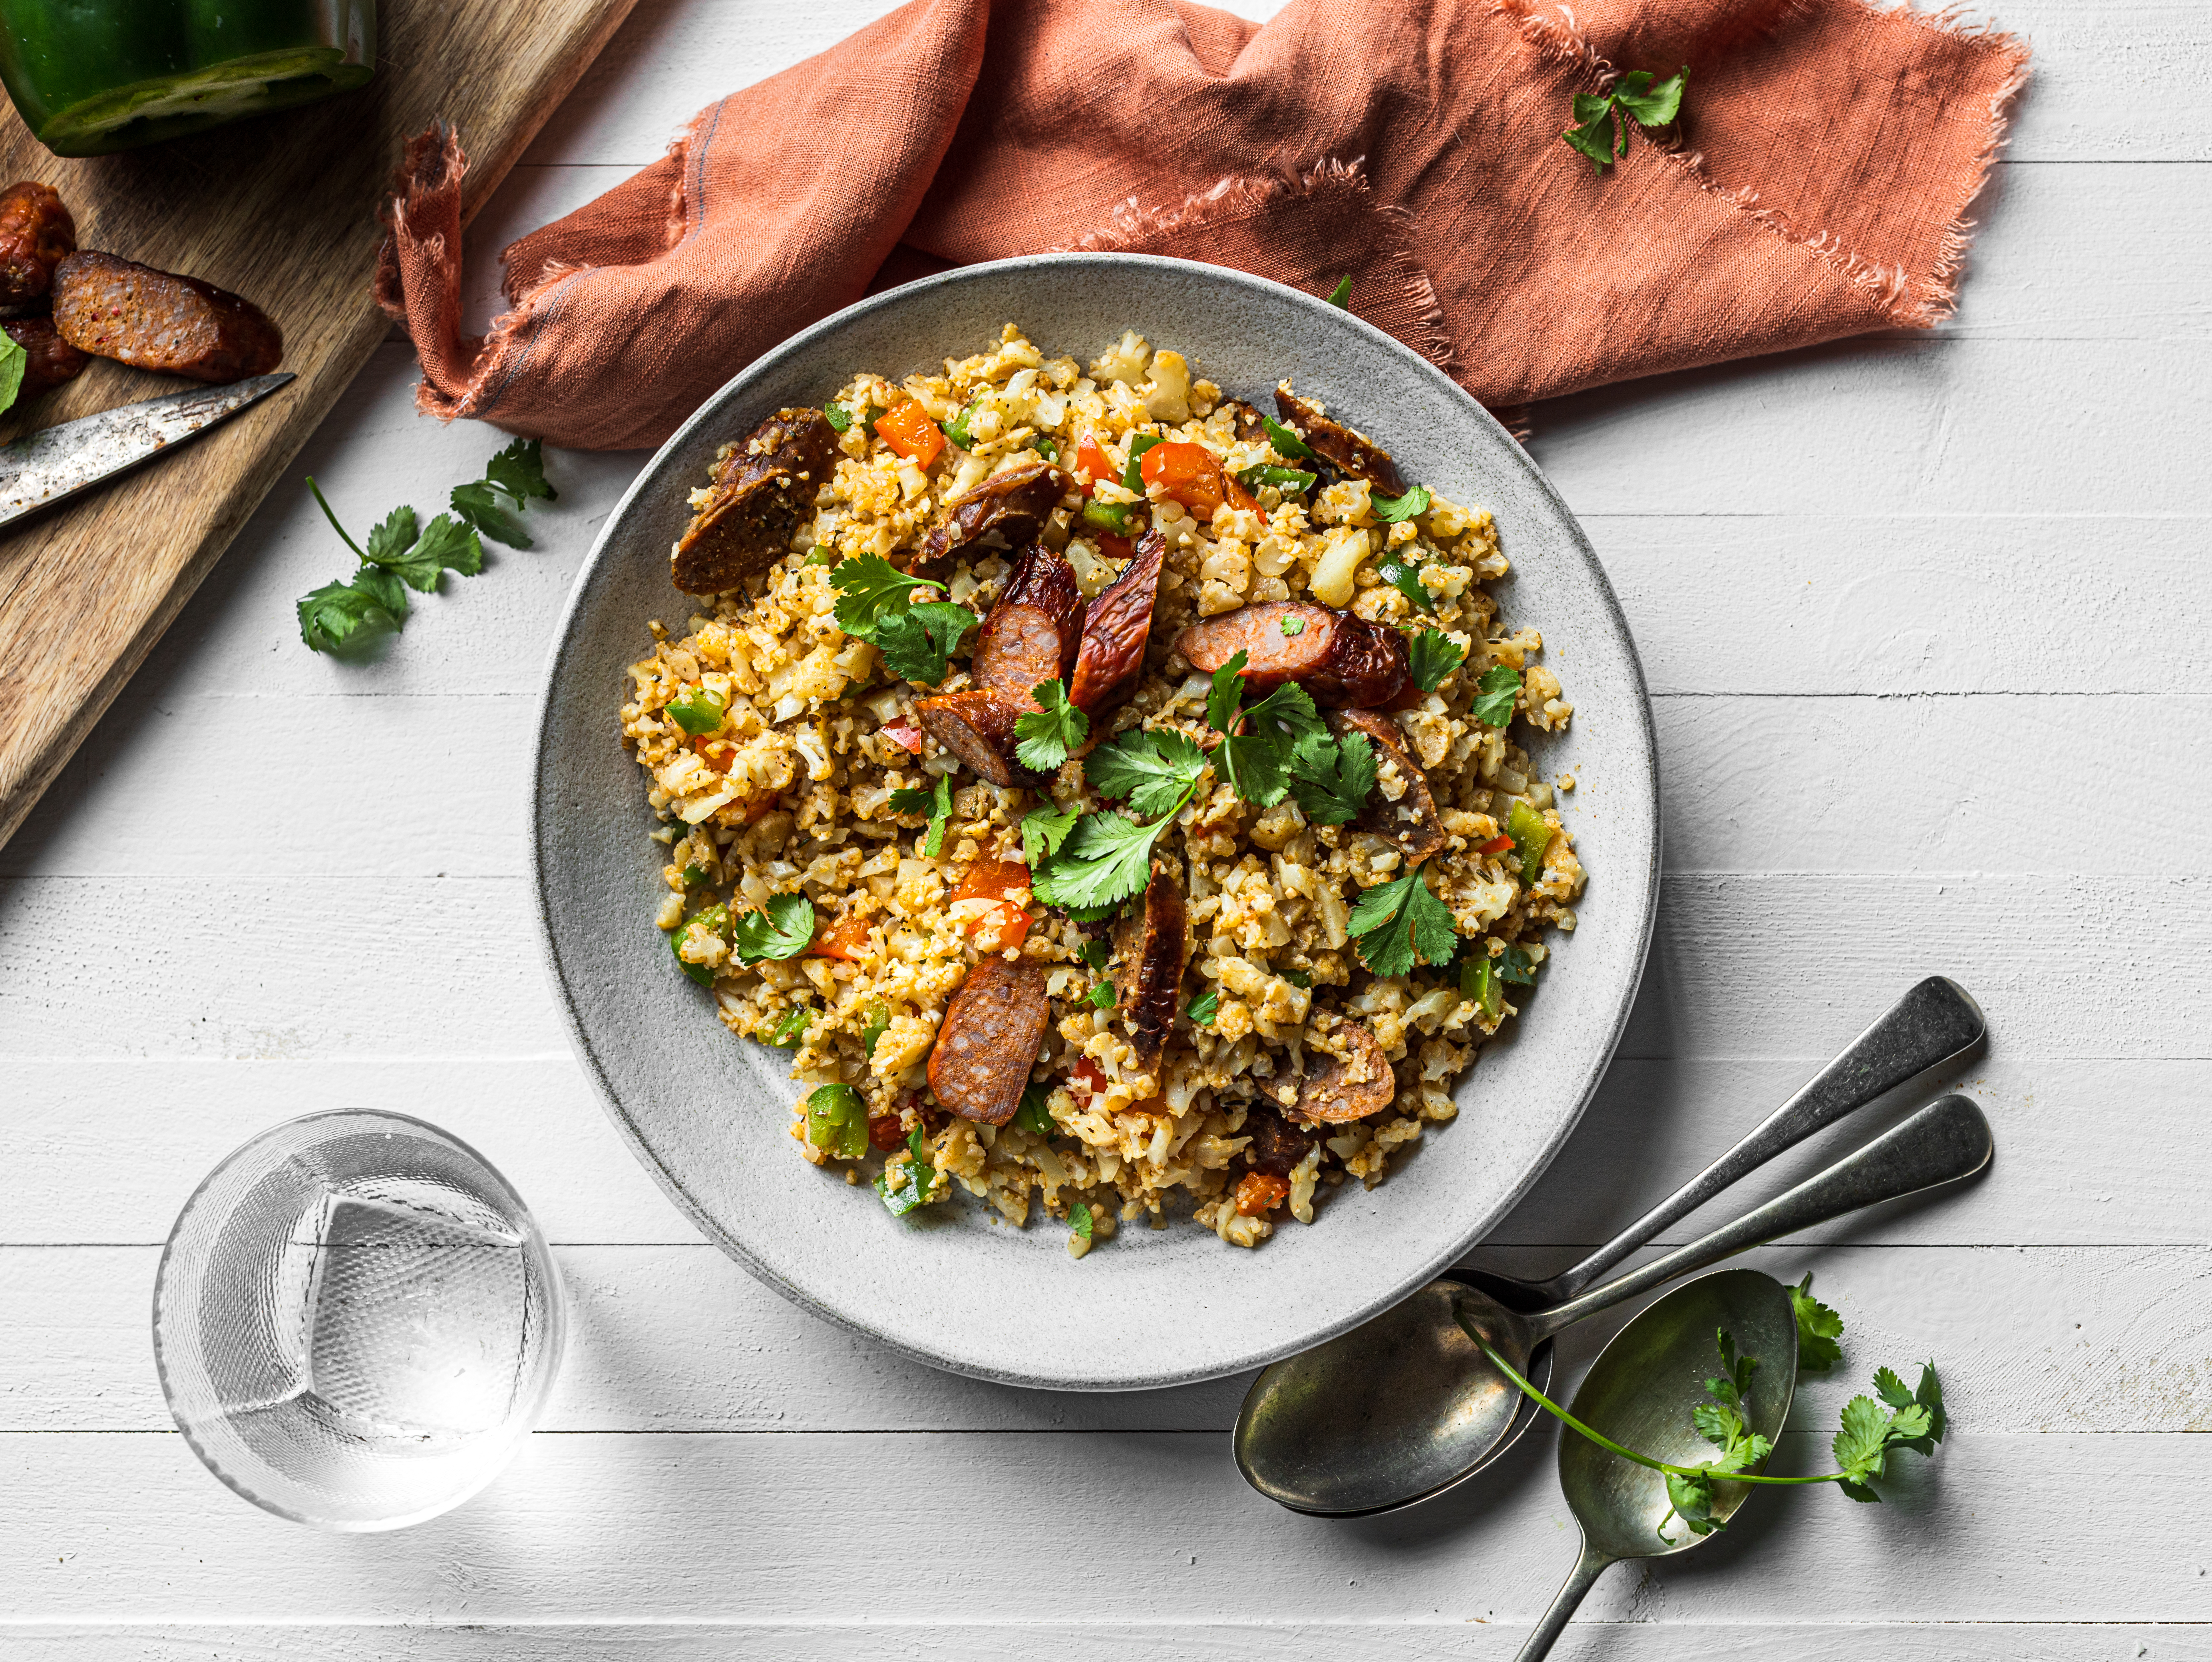 Cajun Style Cauliflower Rice with Sausage & Peppers